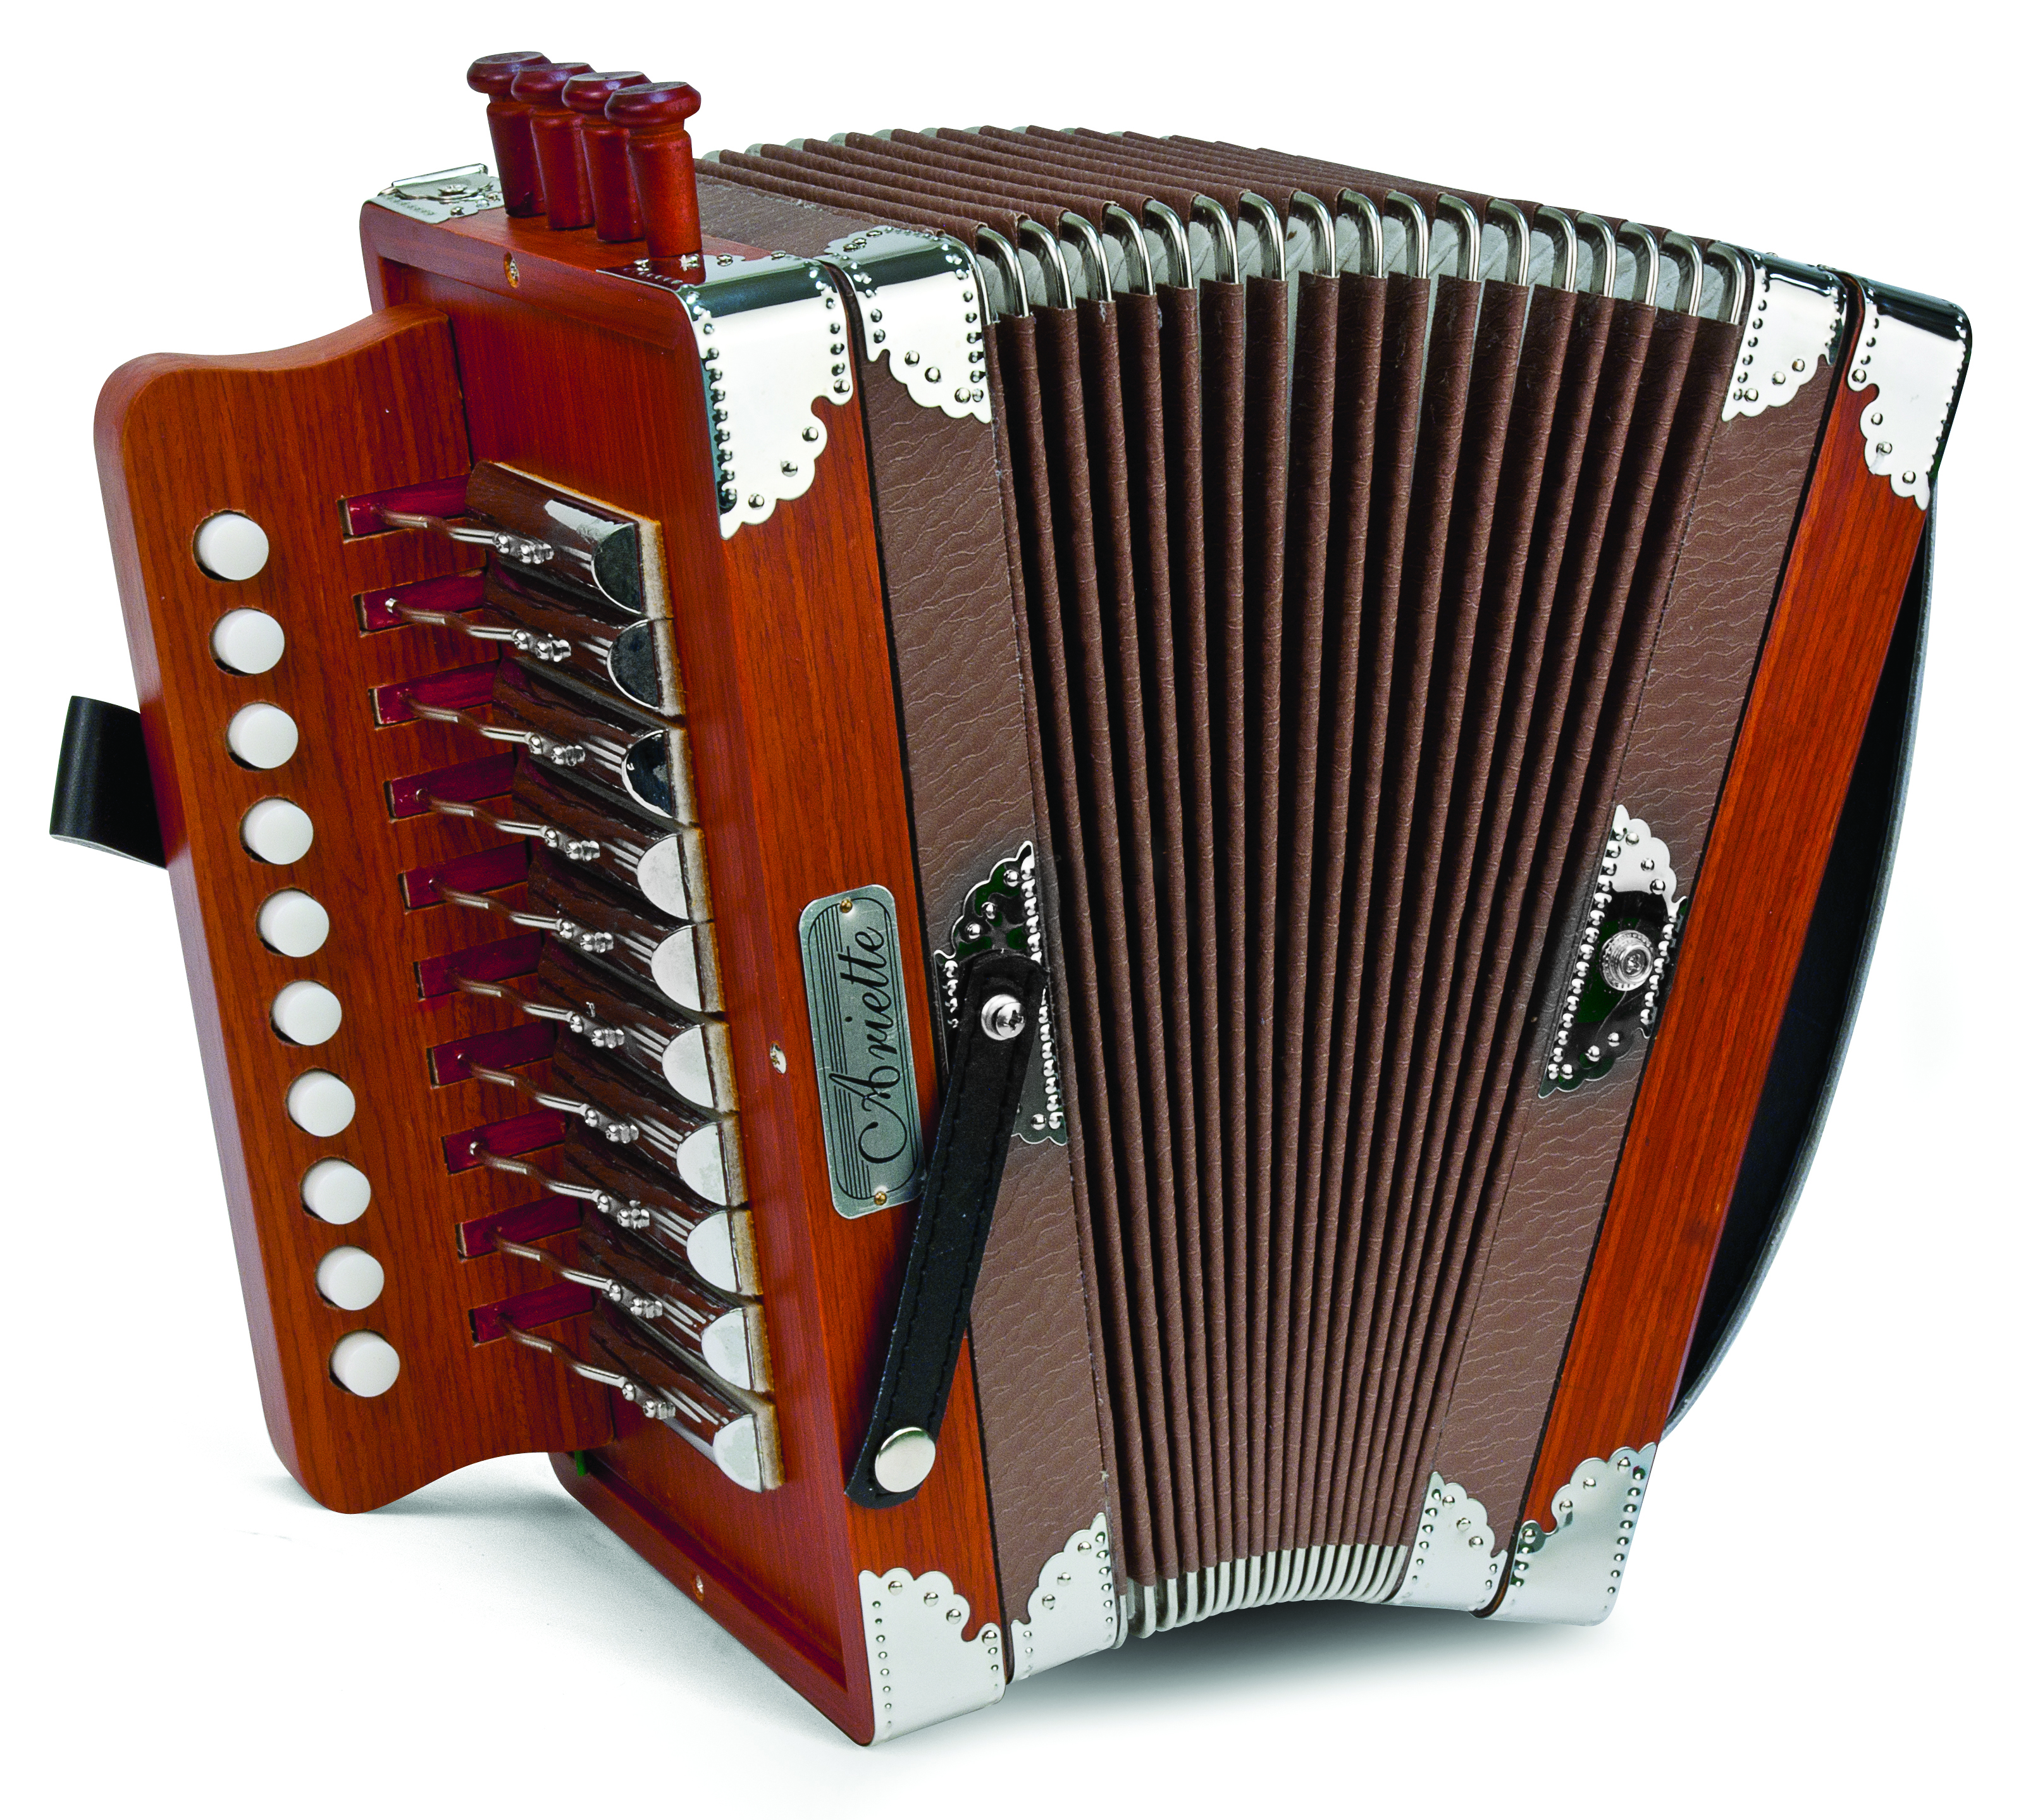 Hohner Ariette One-Row Diatonic Accordion Key of C Natural Color